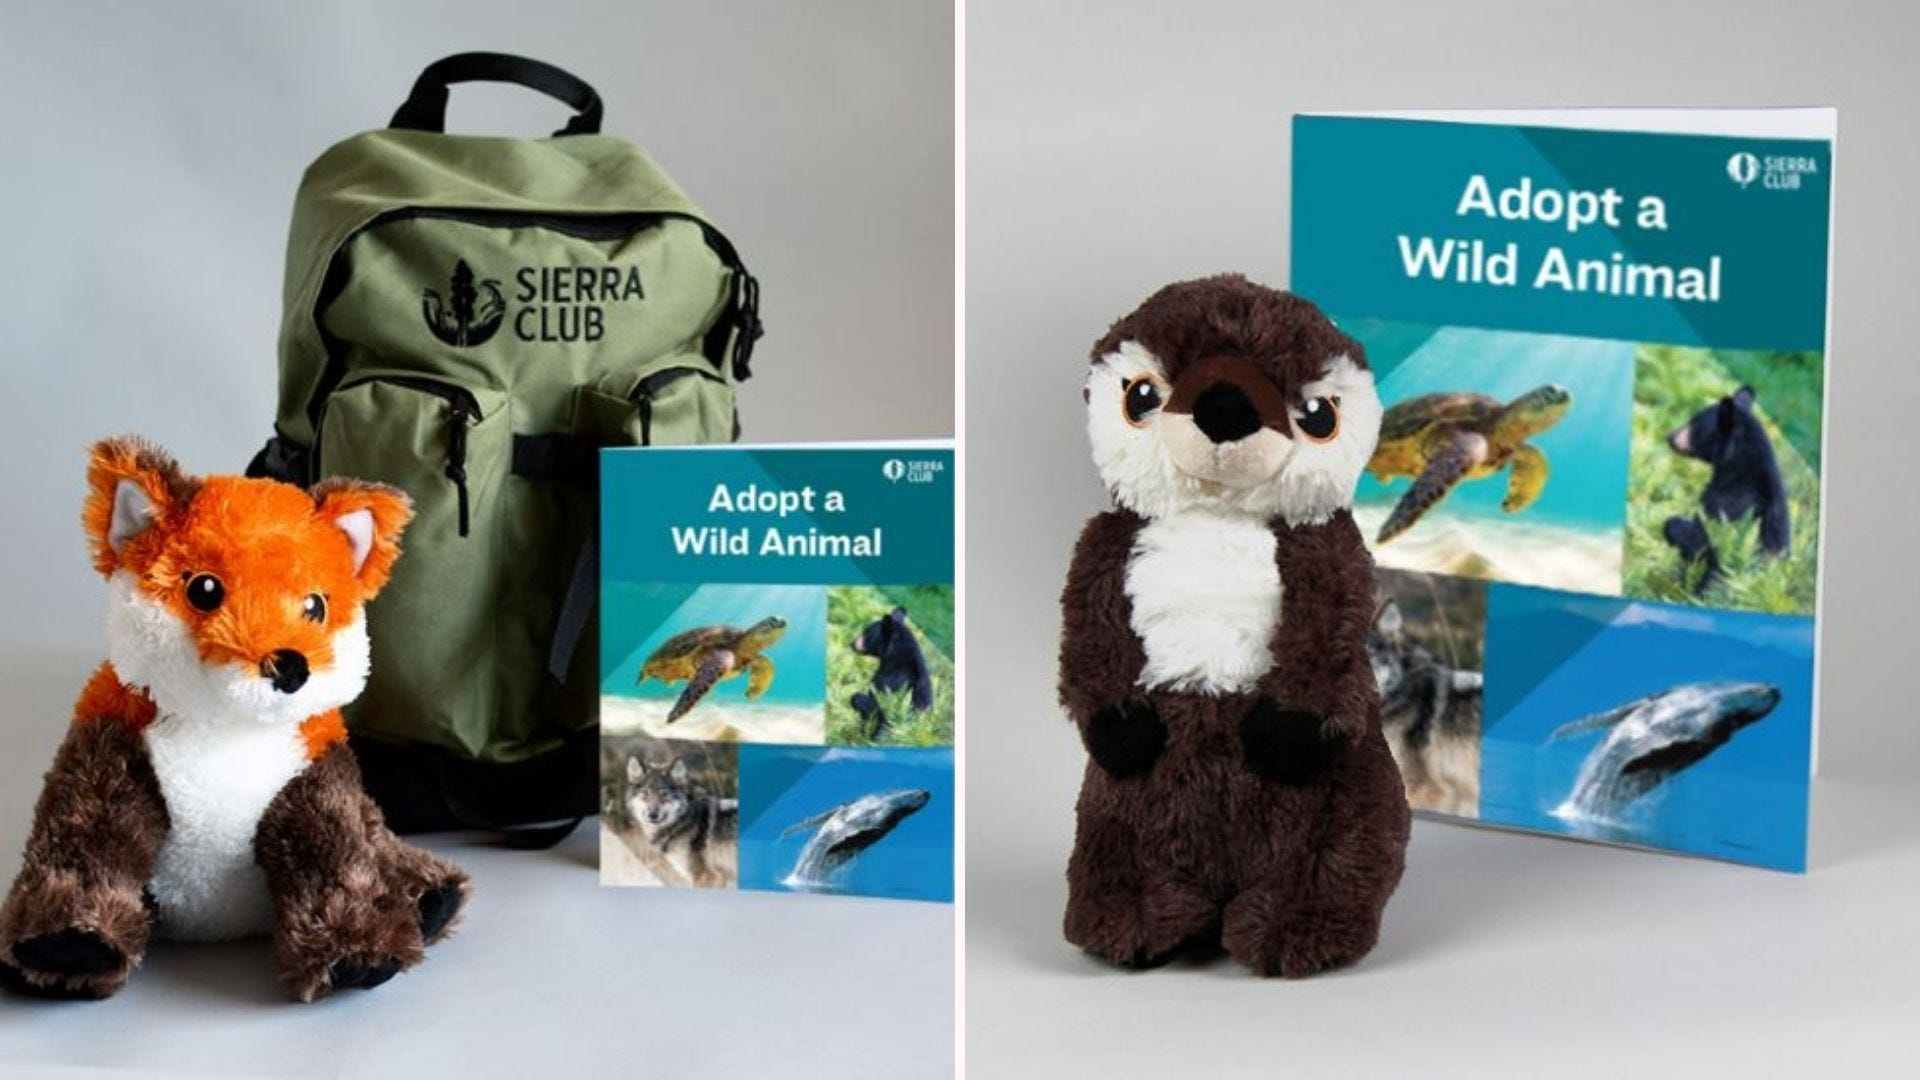 The Red Fox and River Otter adoption kits.